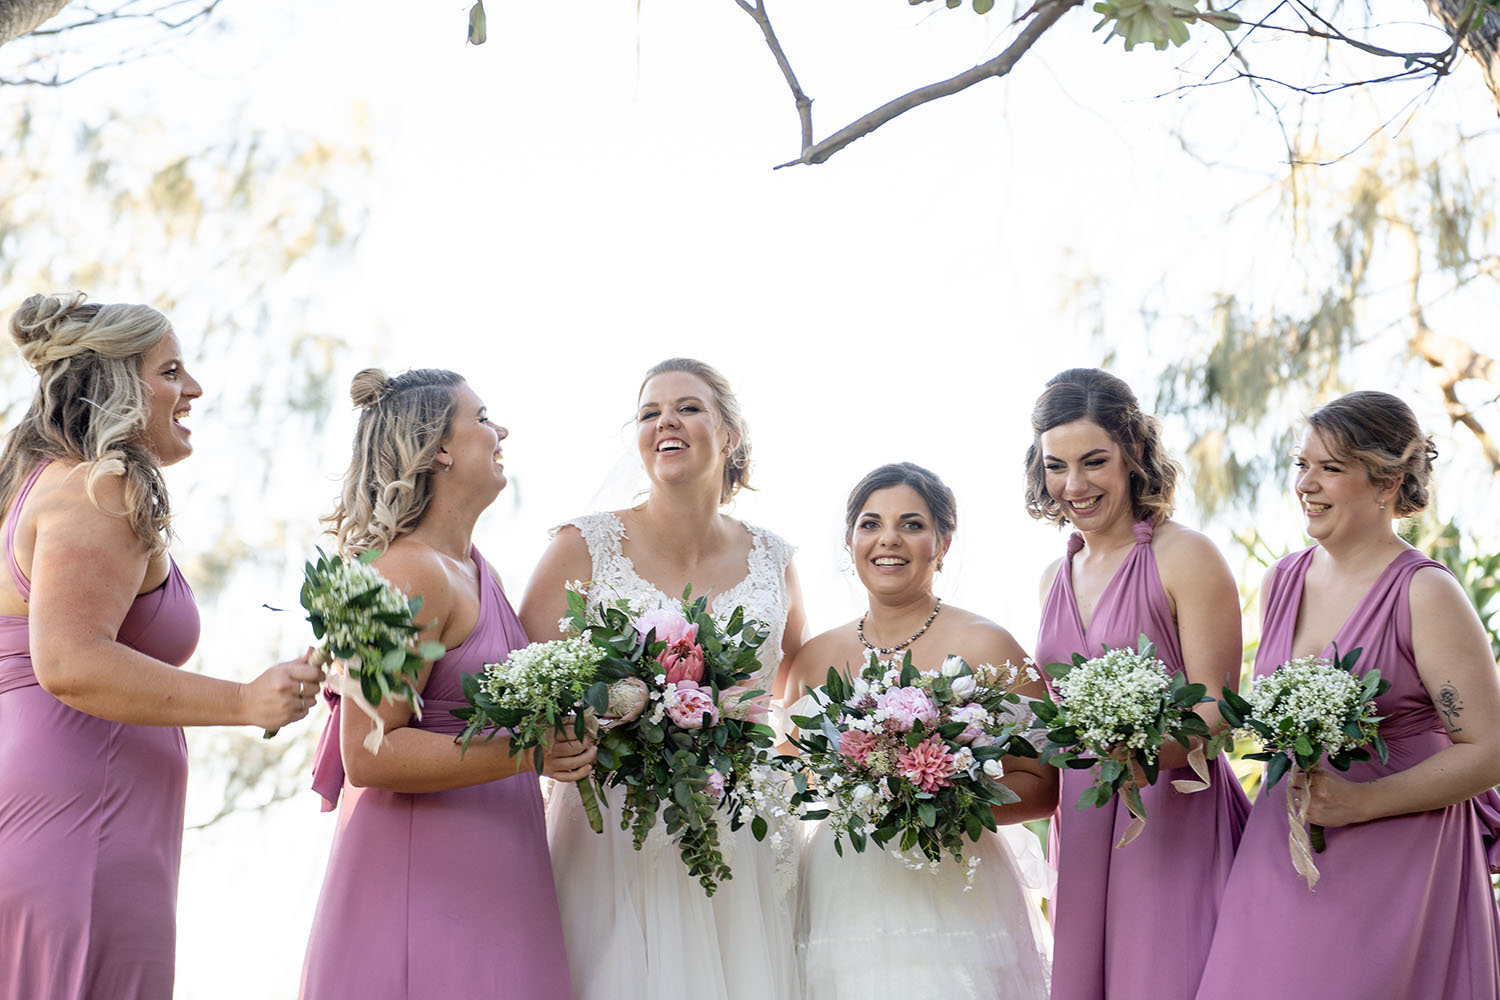 Wedding Photography - Laughing Bridal Party